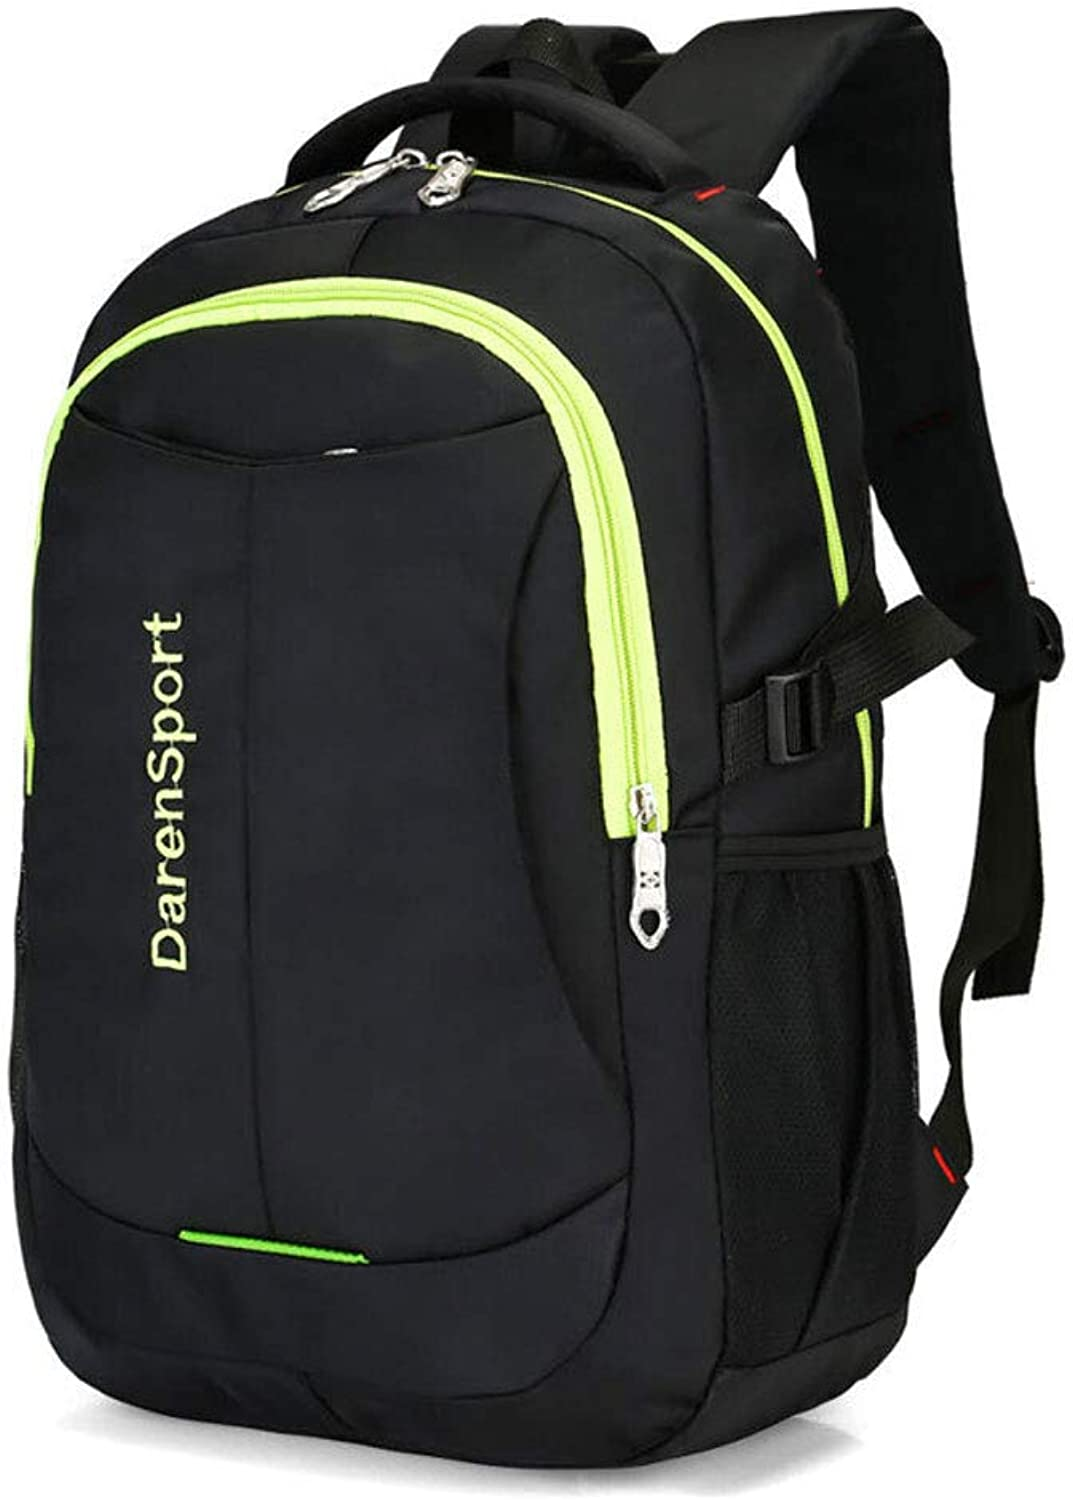 0e548471a76 Laptop Mouth Bag, Breathable Water Repellent Backpack, Outdoor Travel  Climbing Large Capacity Men's and Women's College High School Students  Backpack (color ...